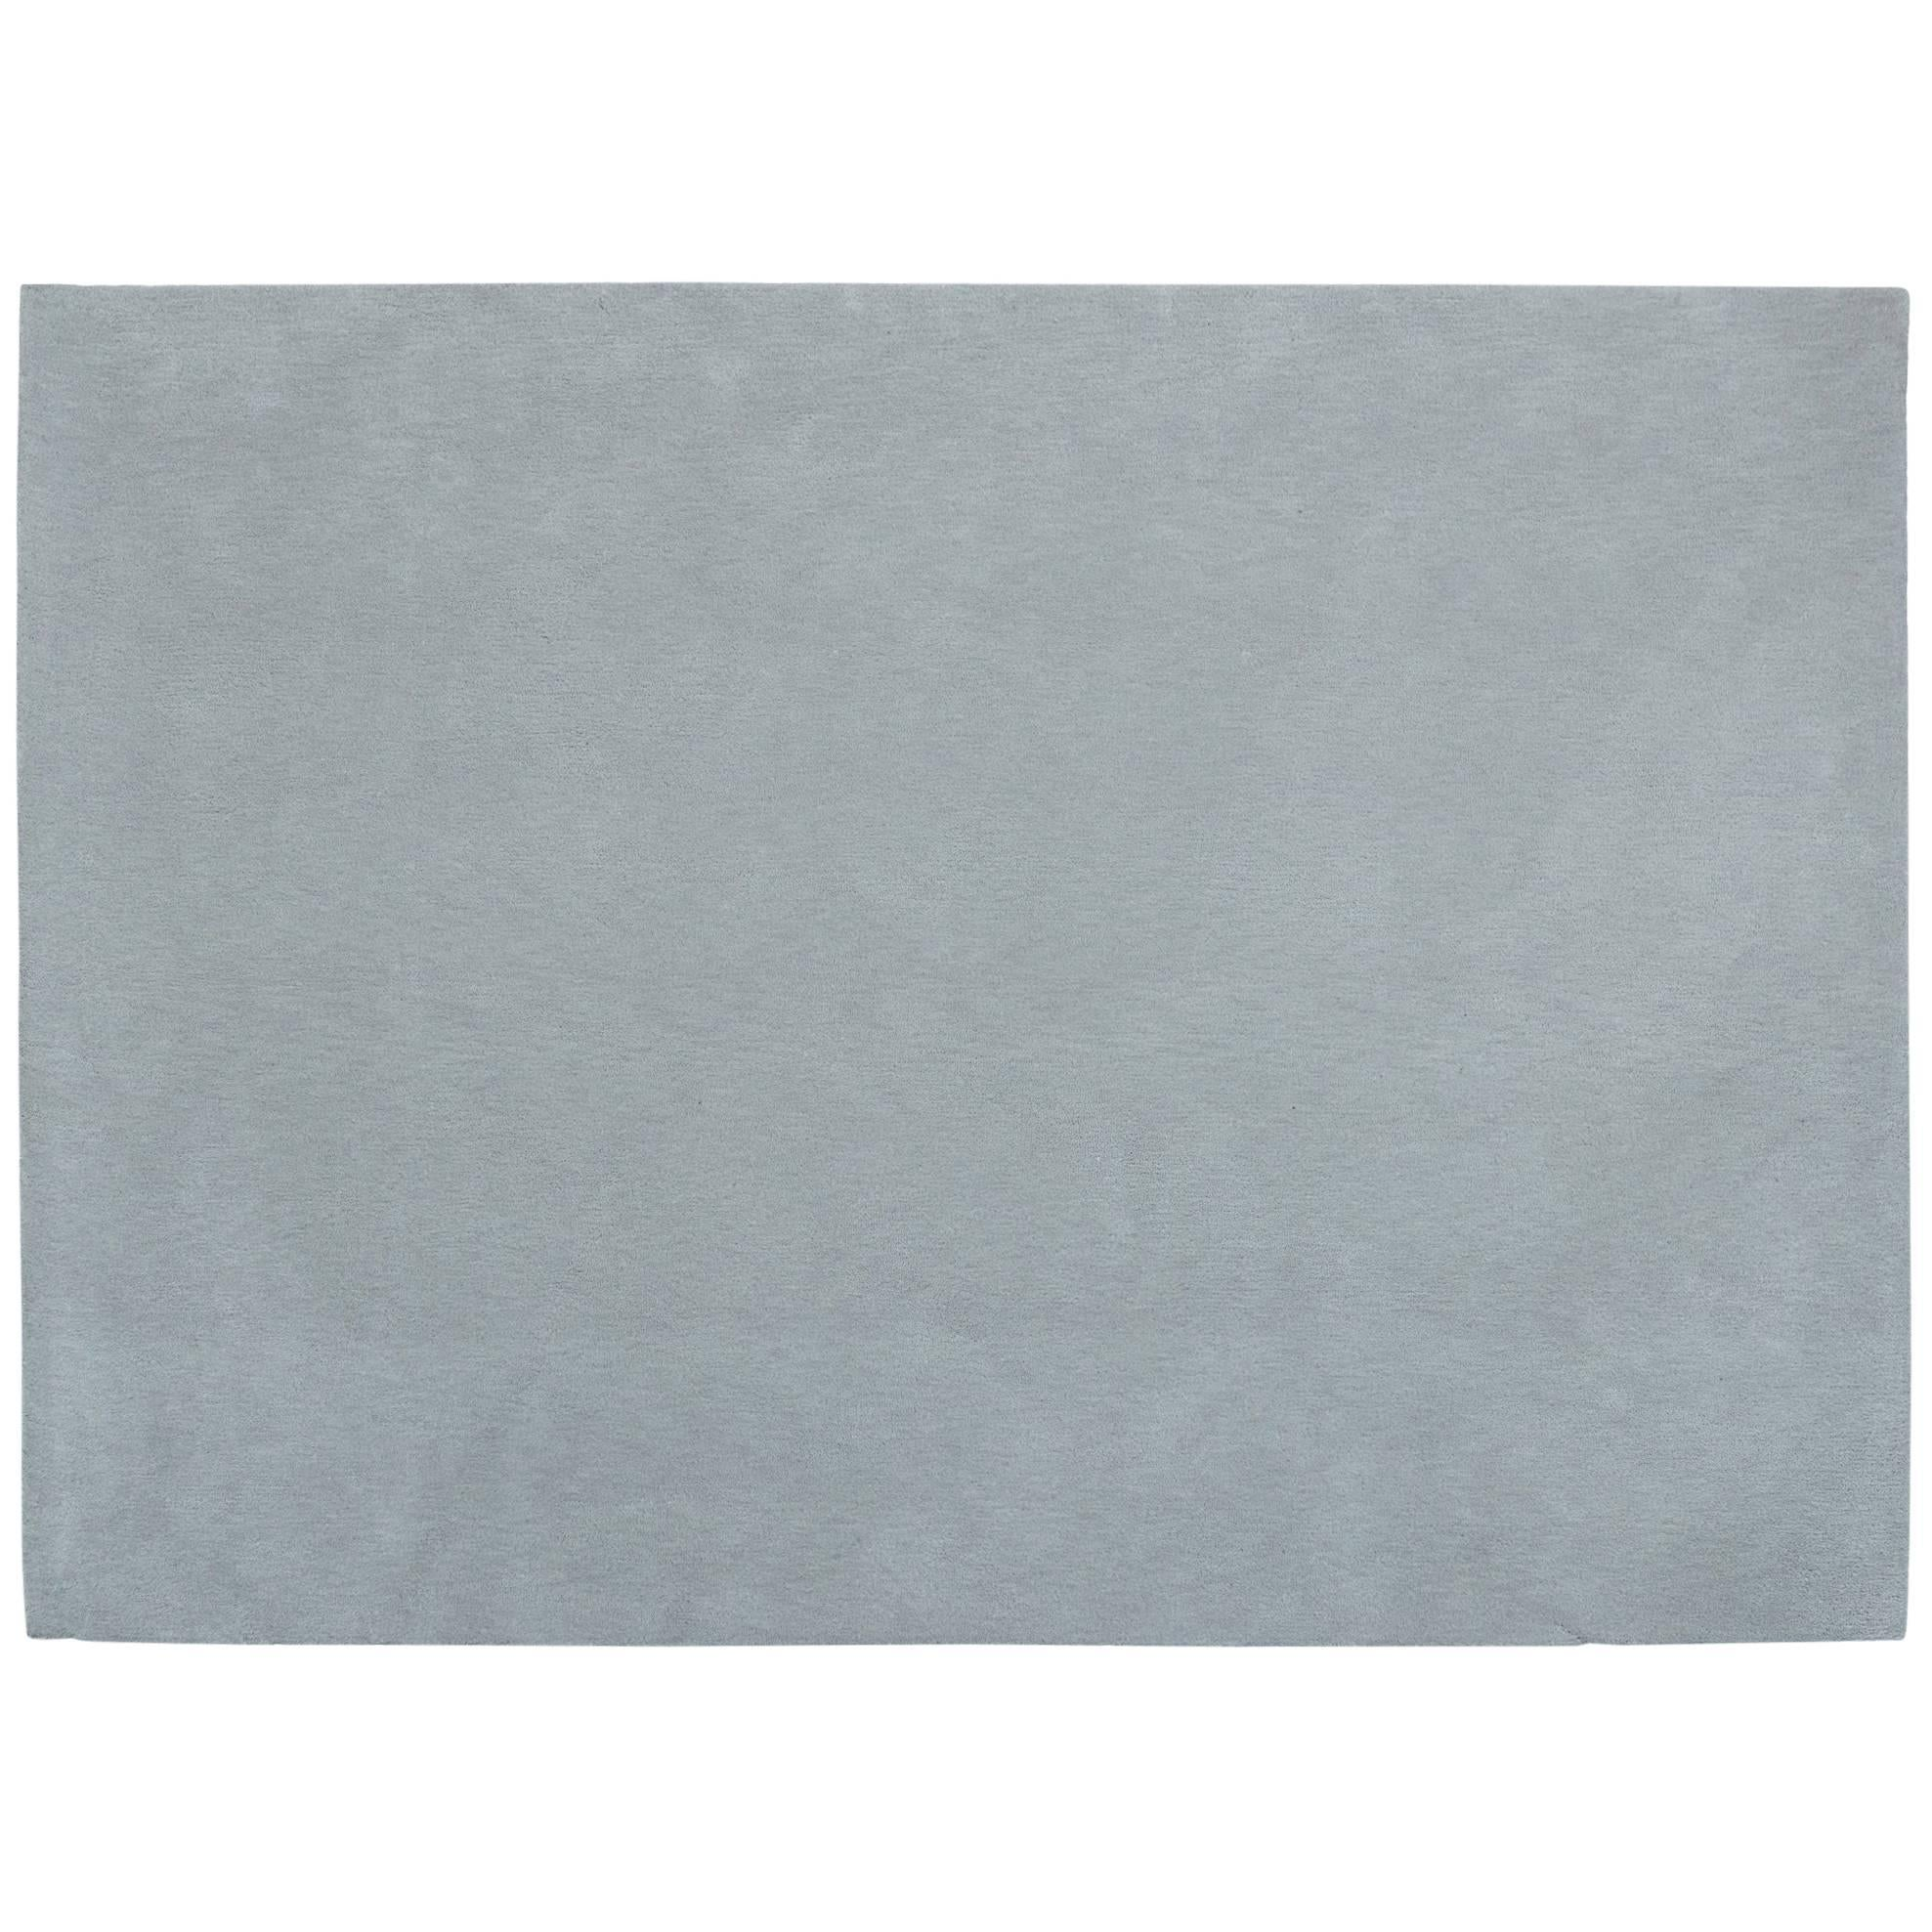 'Gris Pinton' Hand-Tufted Area Rug in Grey by Pinton